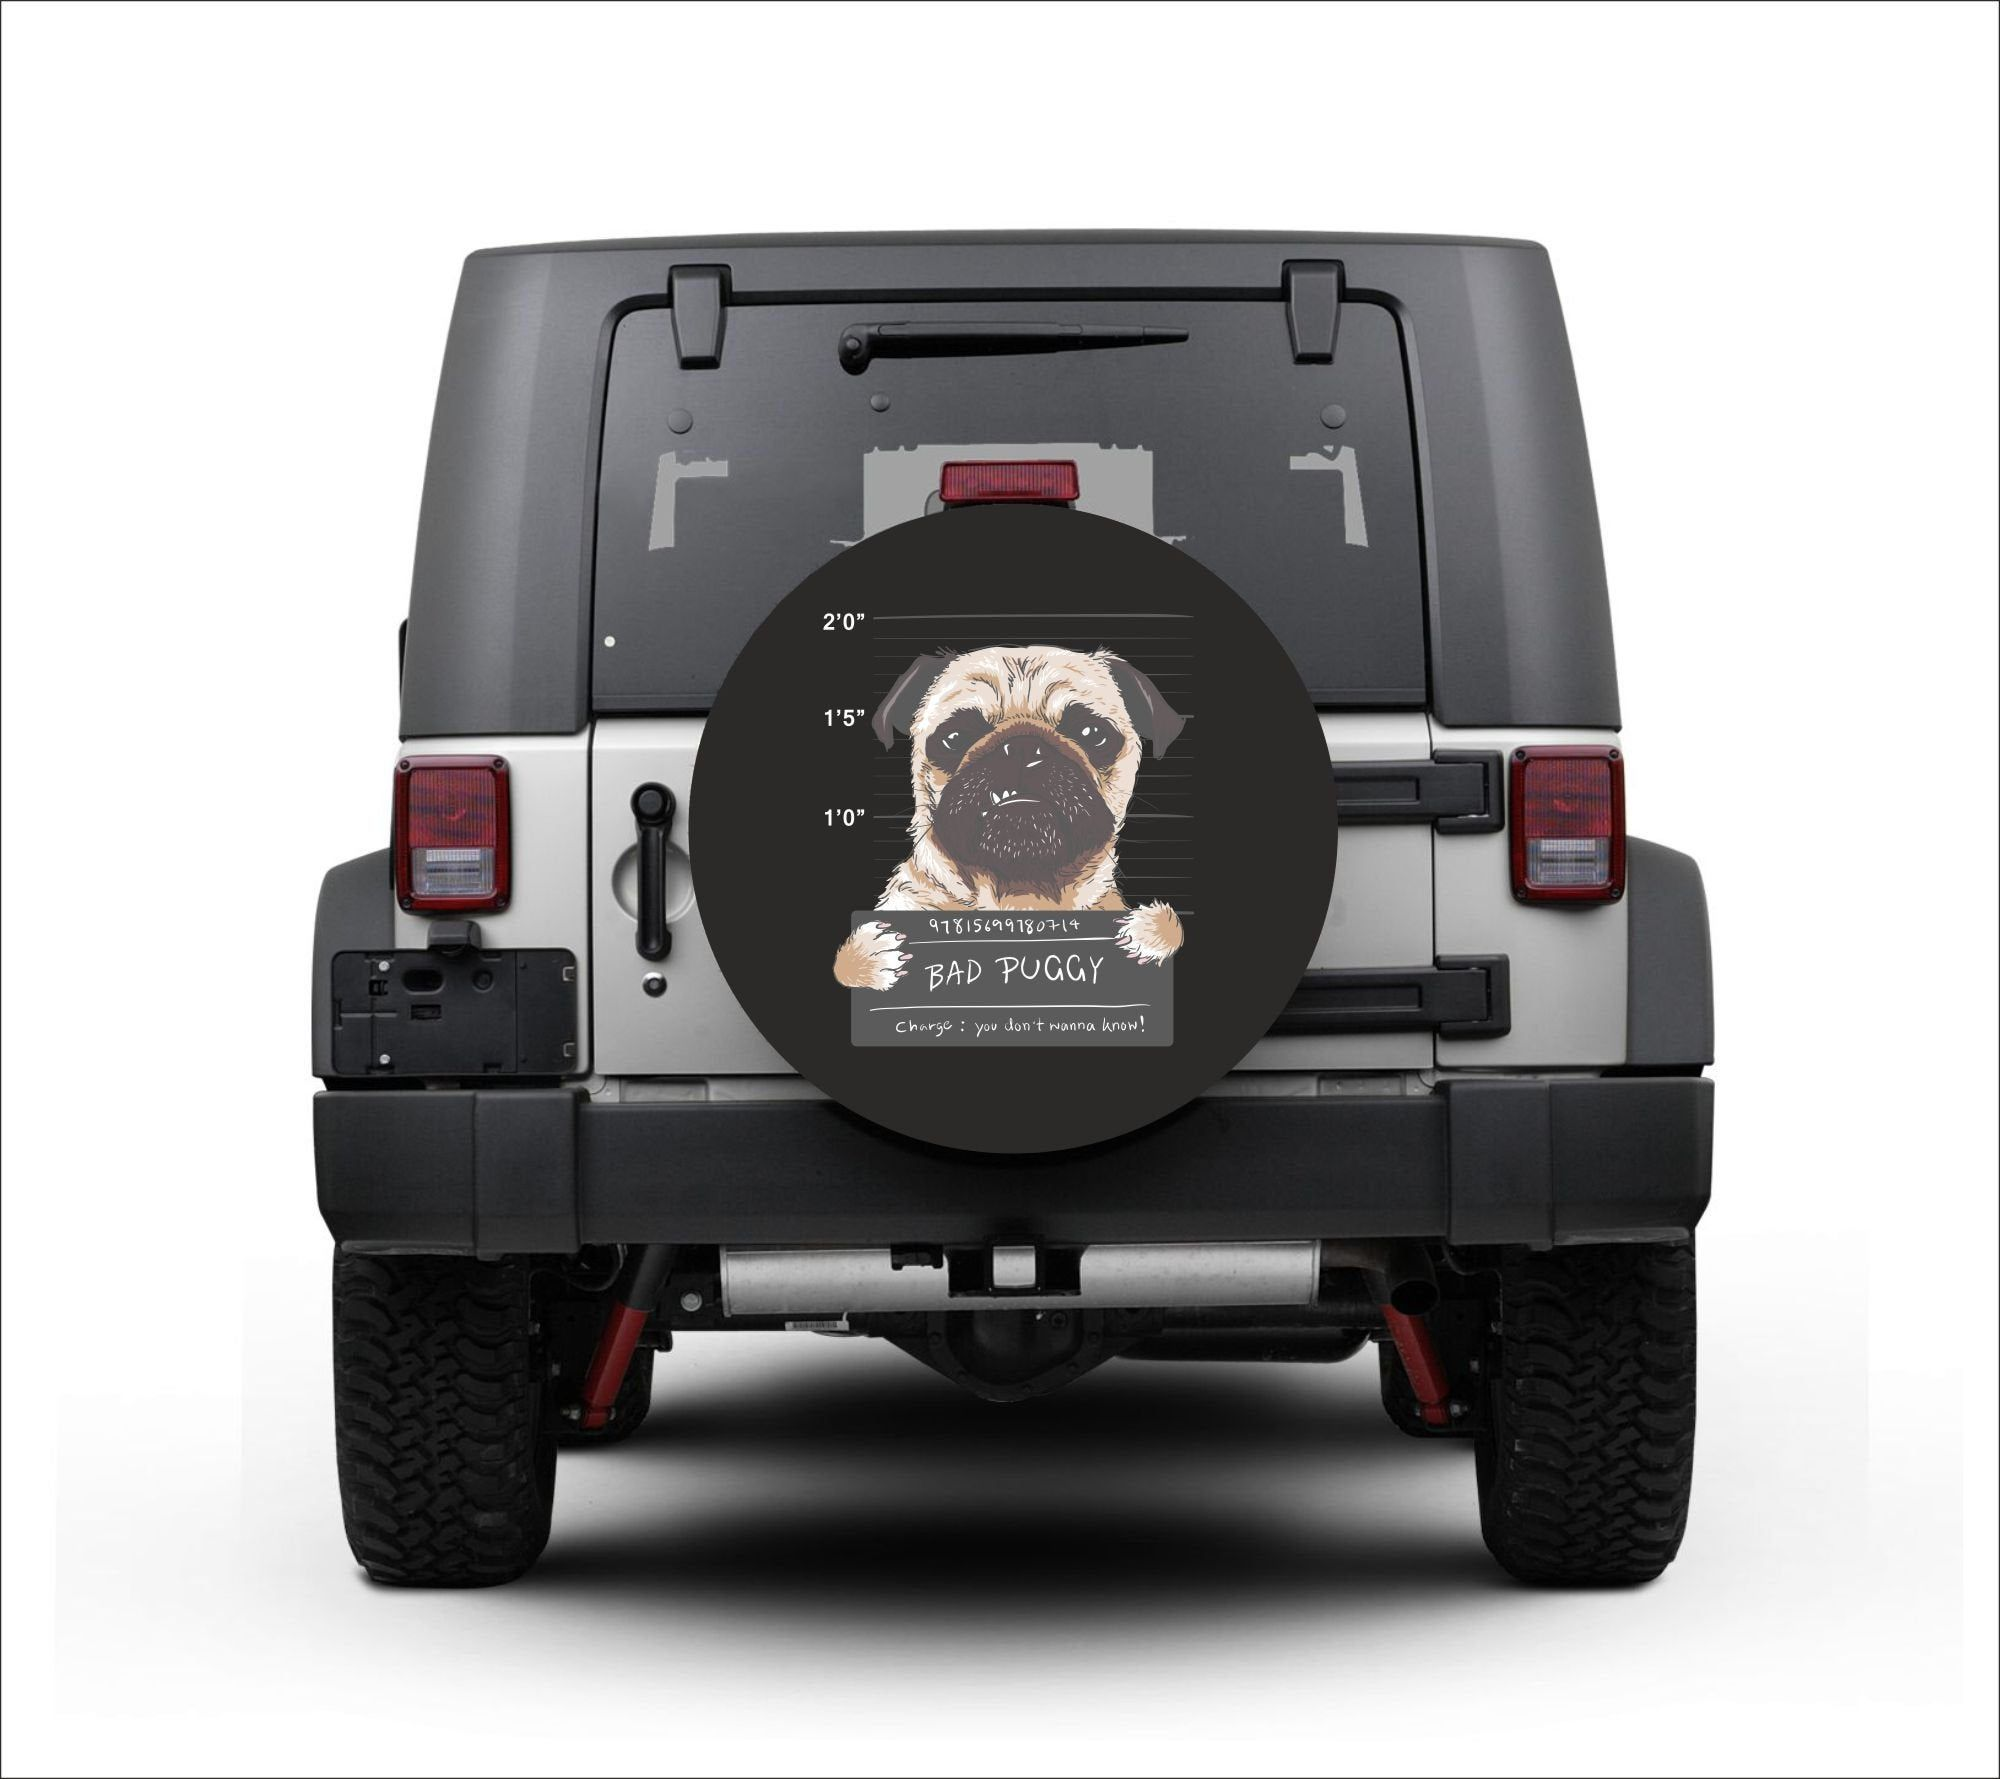 Universal Tire Cover Wheel Cover For Jeep Wrangler French